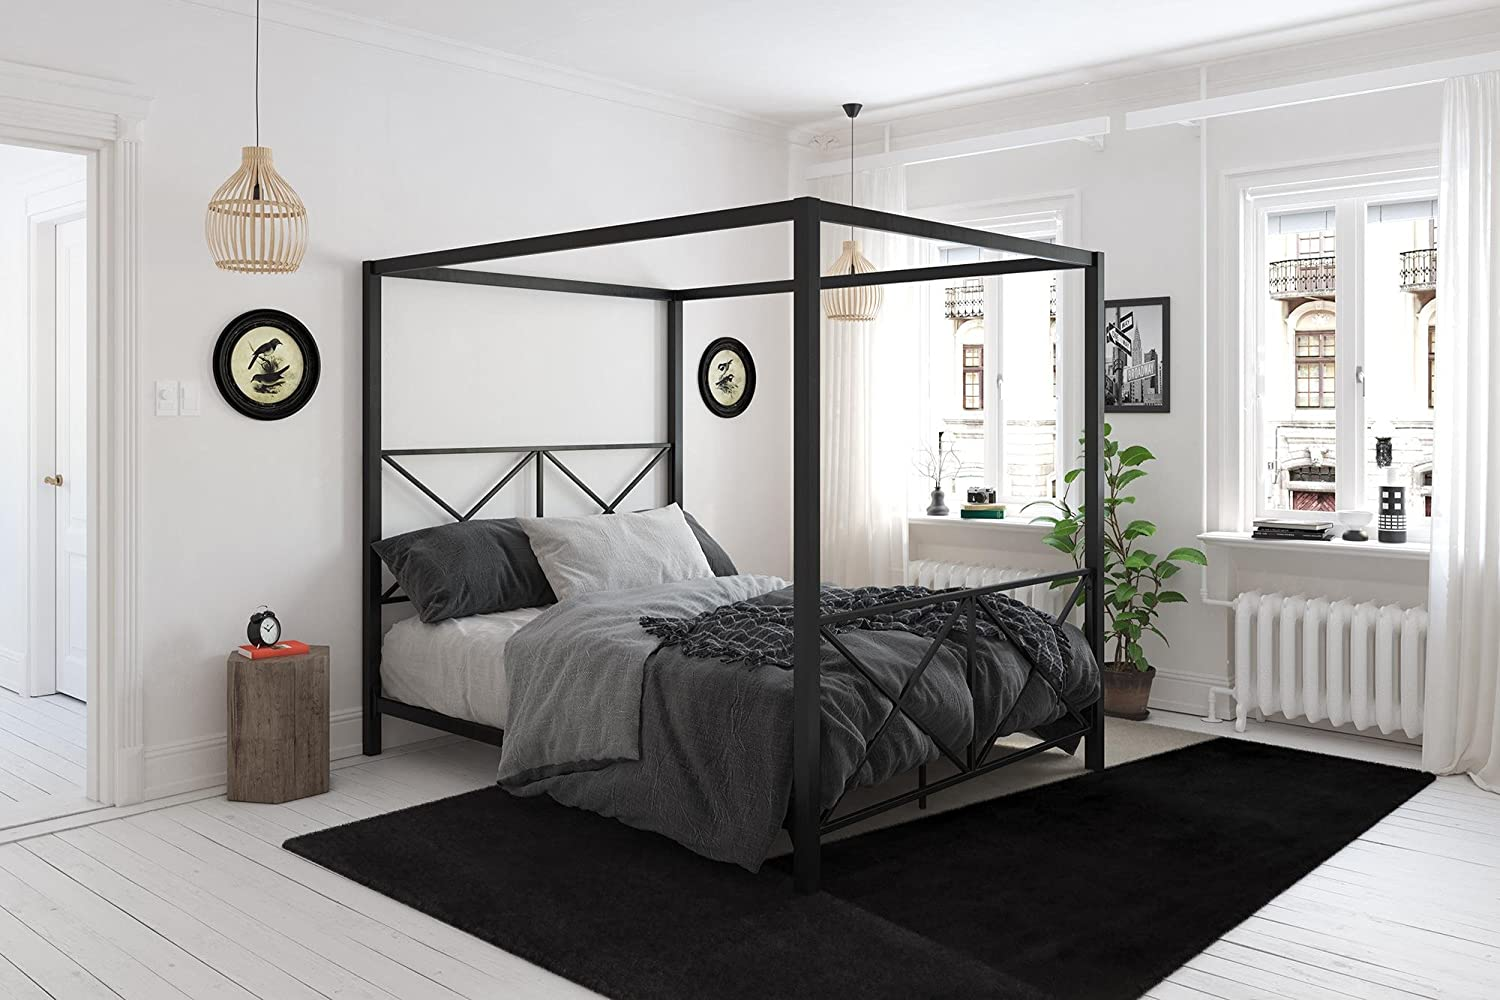 - DHP Rosedale Metal Canopy Bed, Queen Size - Black: Amazon.de